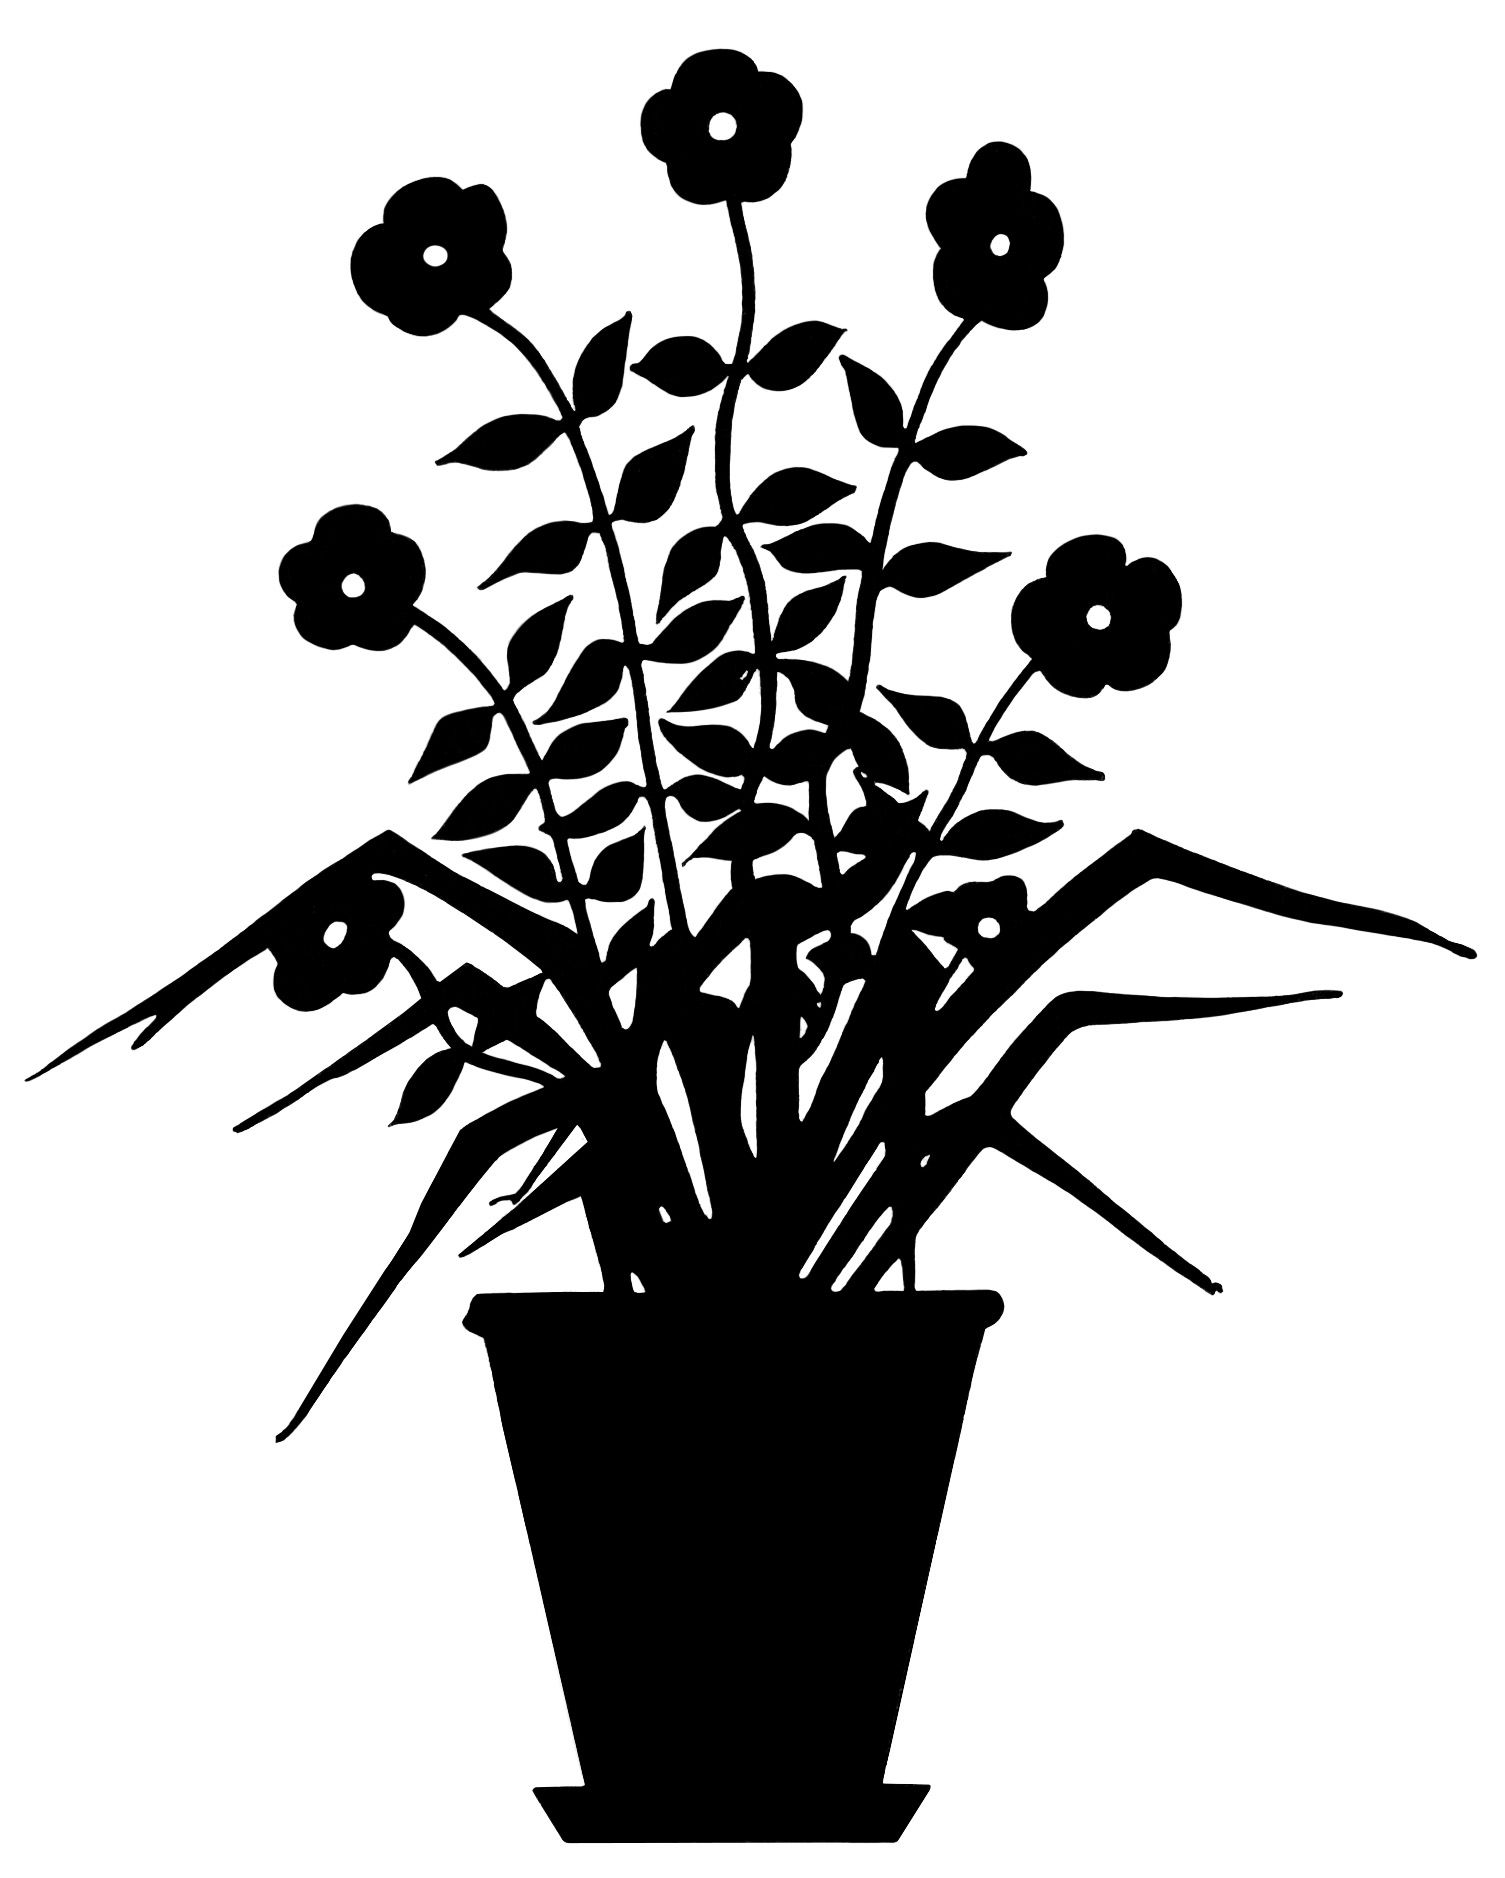 vintage flower clip art, flowering plant silhouette, black.